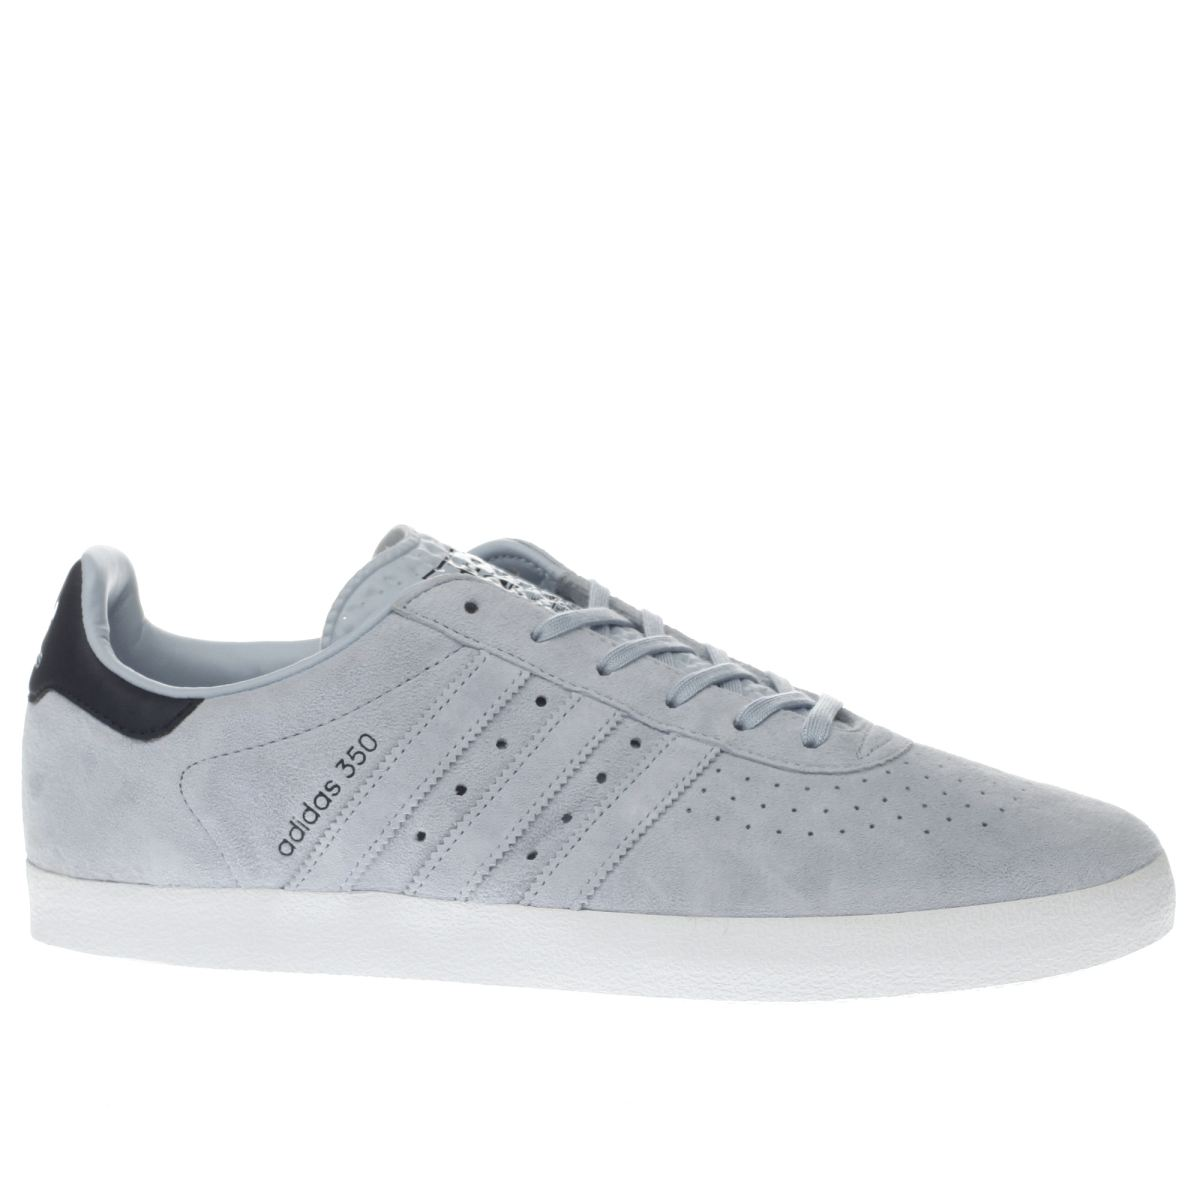 adidas pale blue 350 trainers